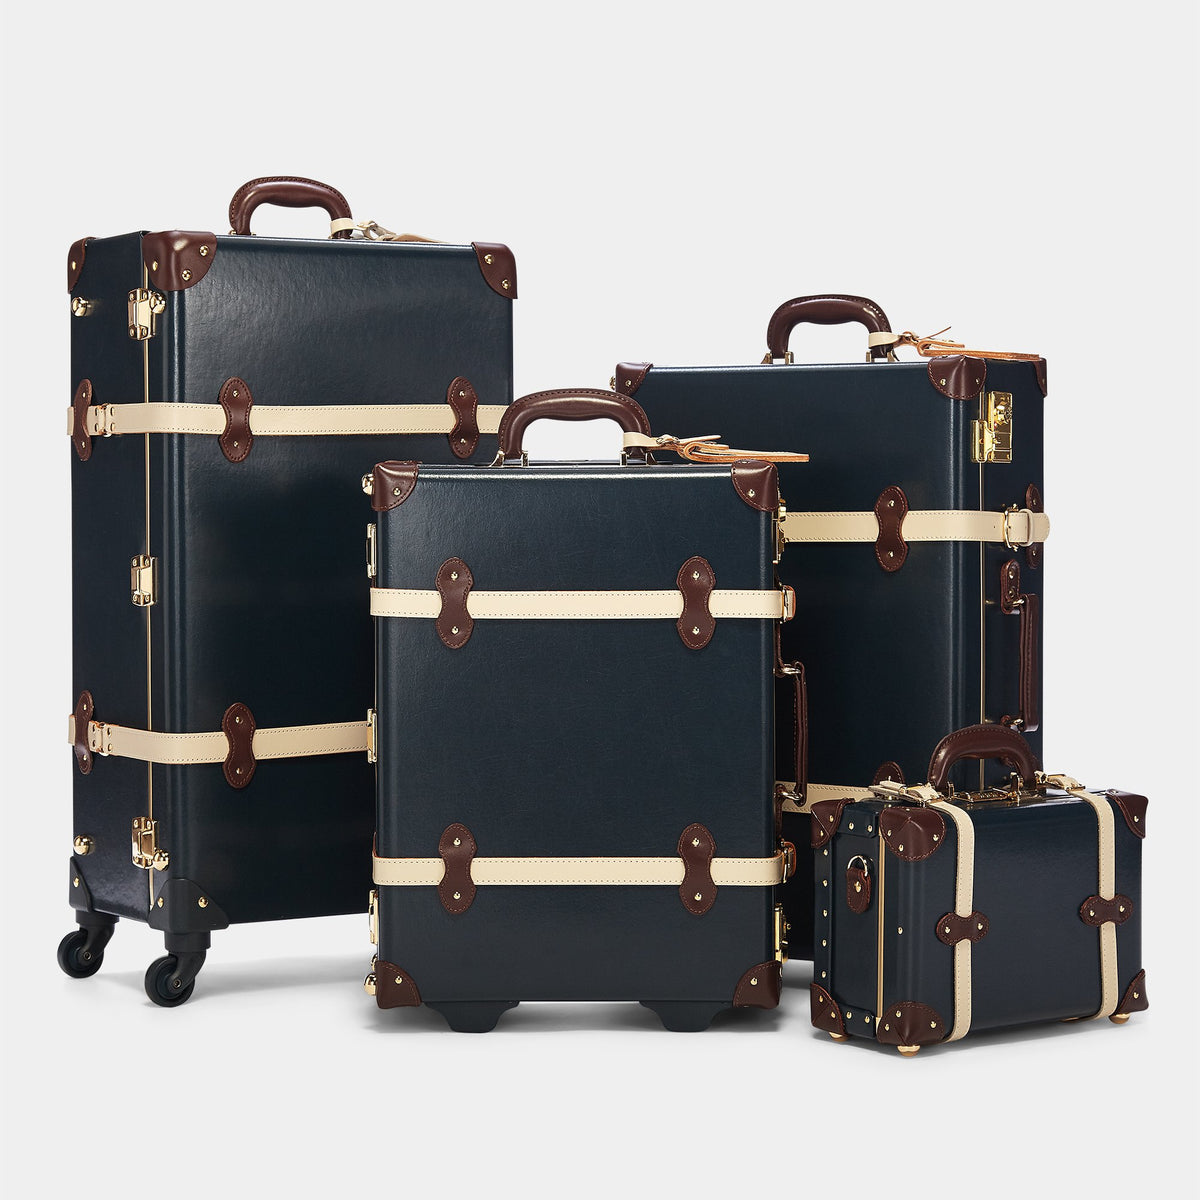 The Architect Carryon in Navy - Vintage Style Leather Case - Alongside matching cases from The Architect Navy collection